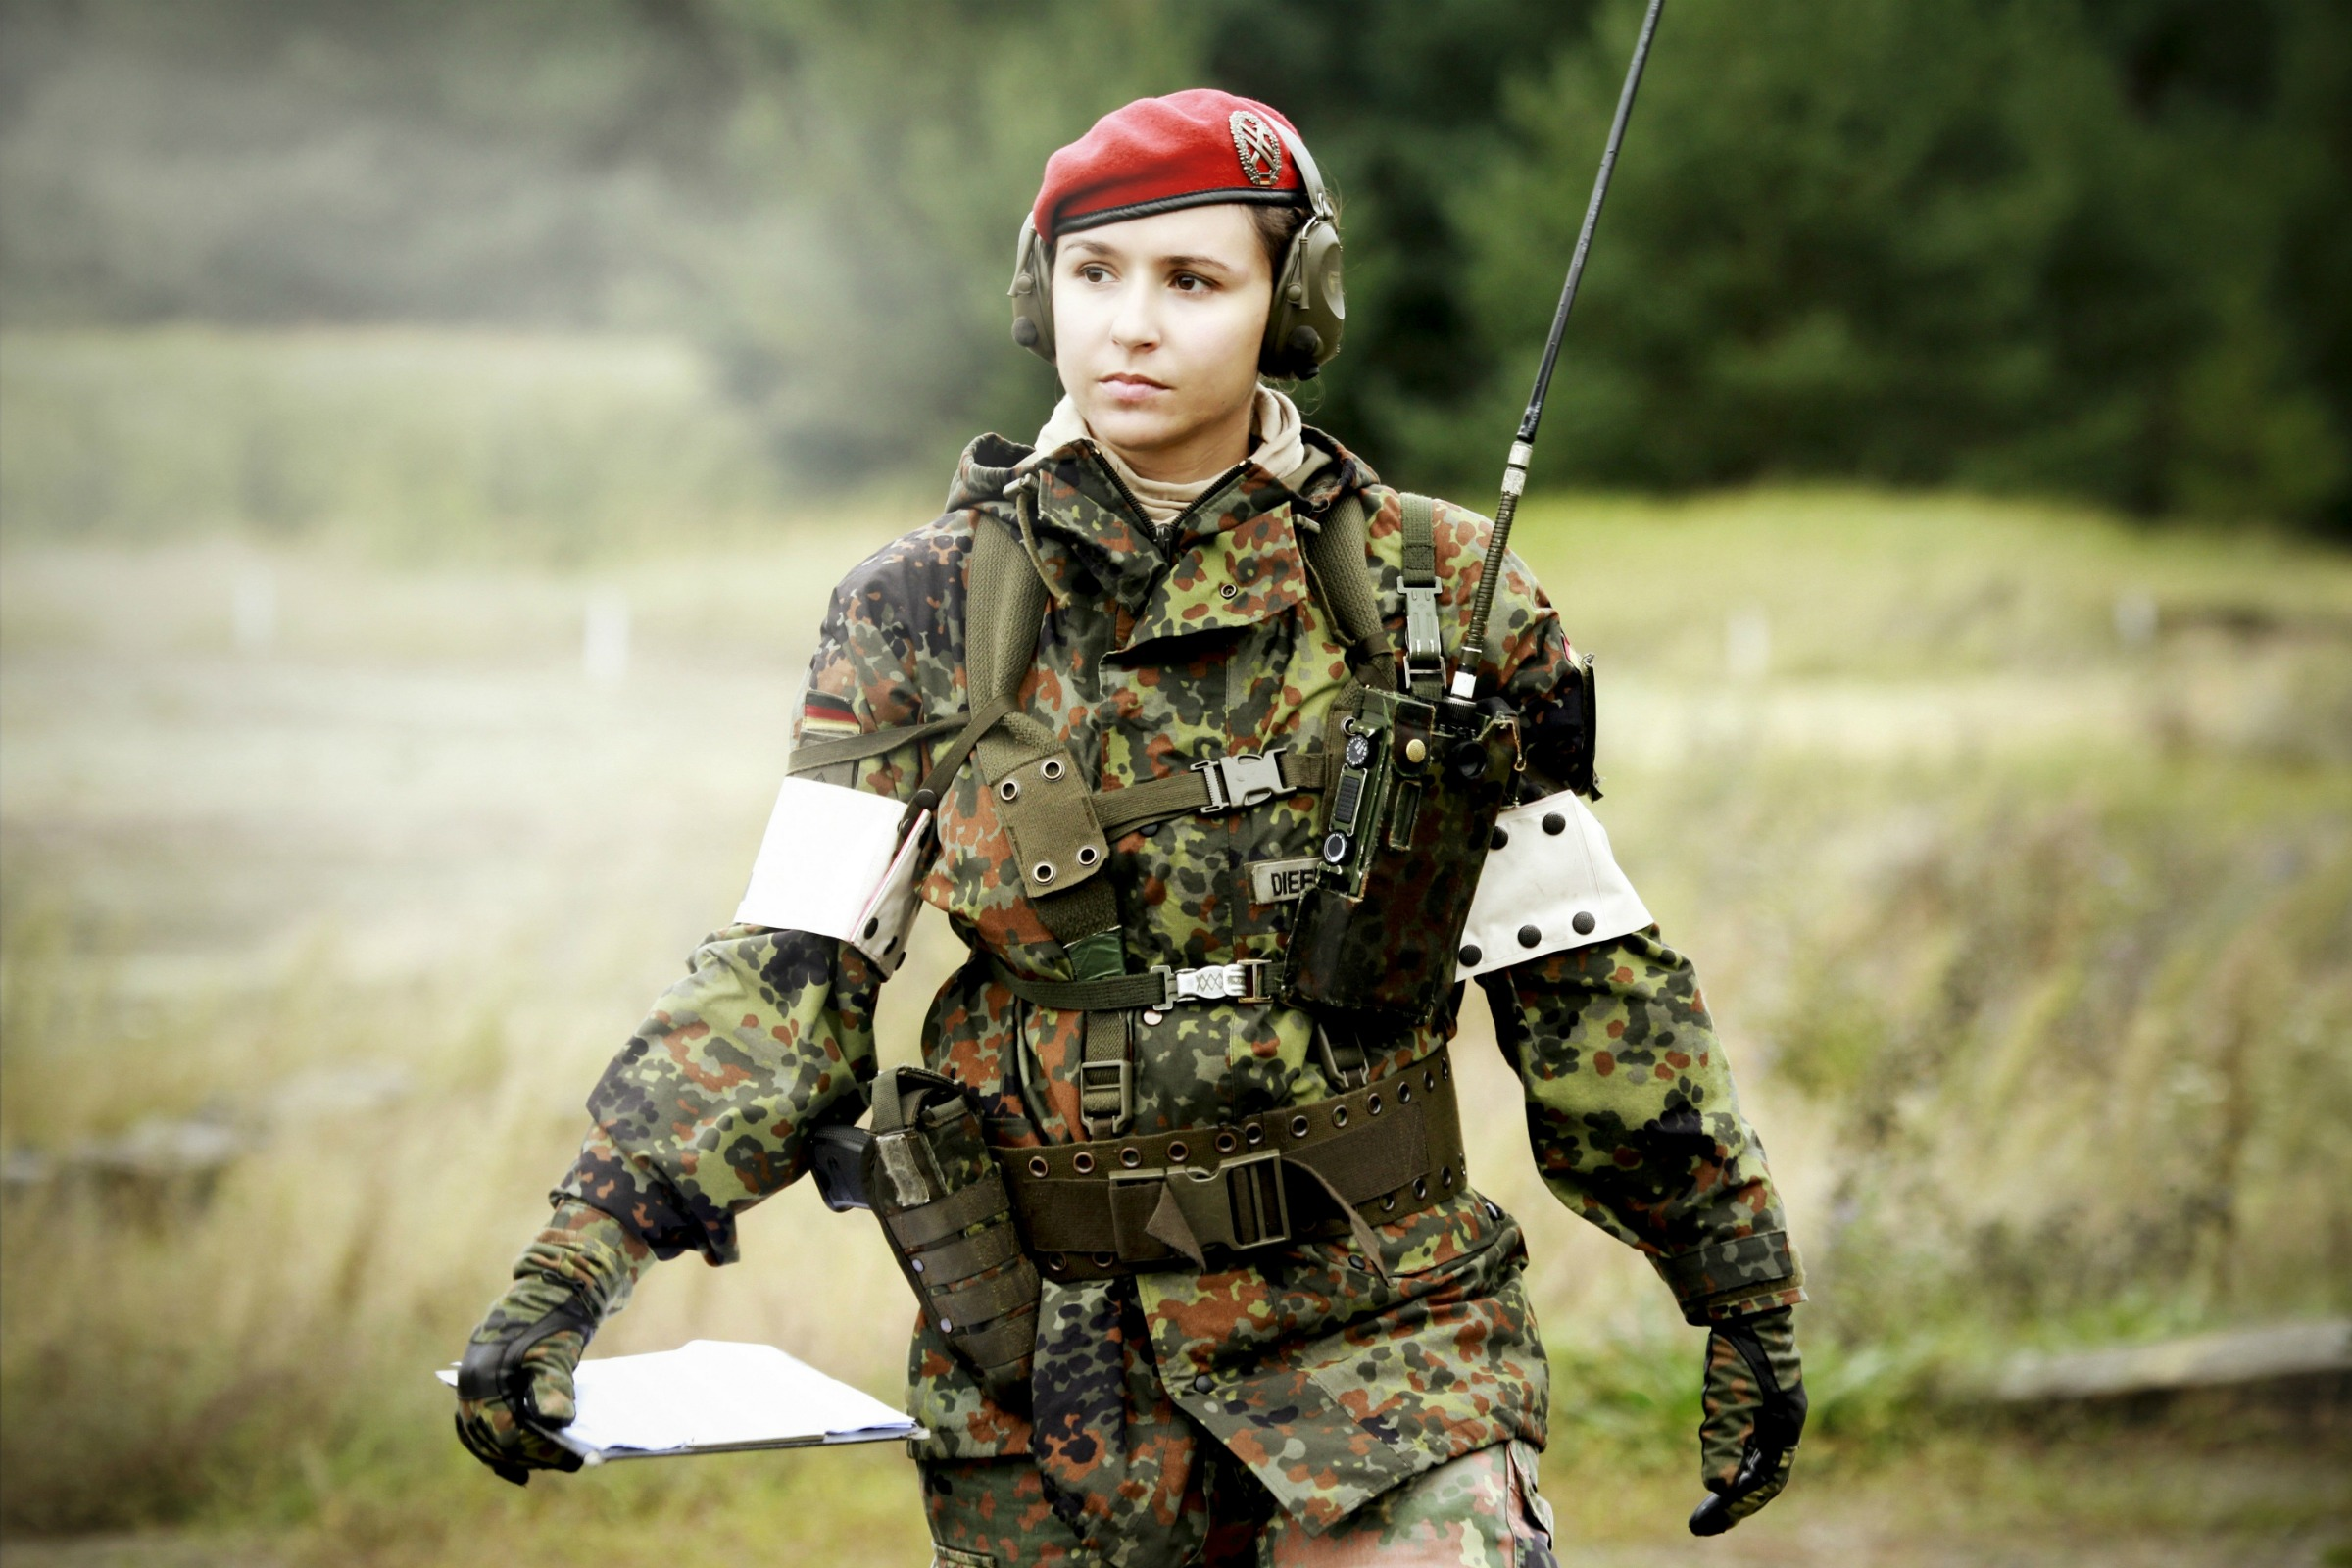 woman Hot soldier